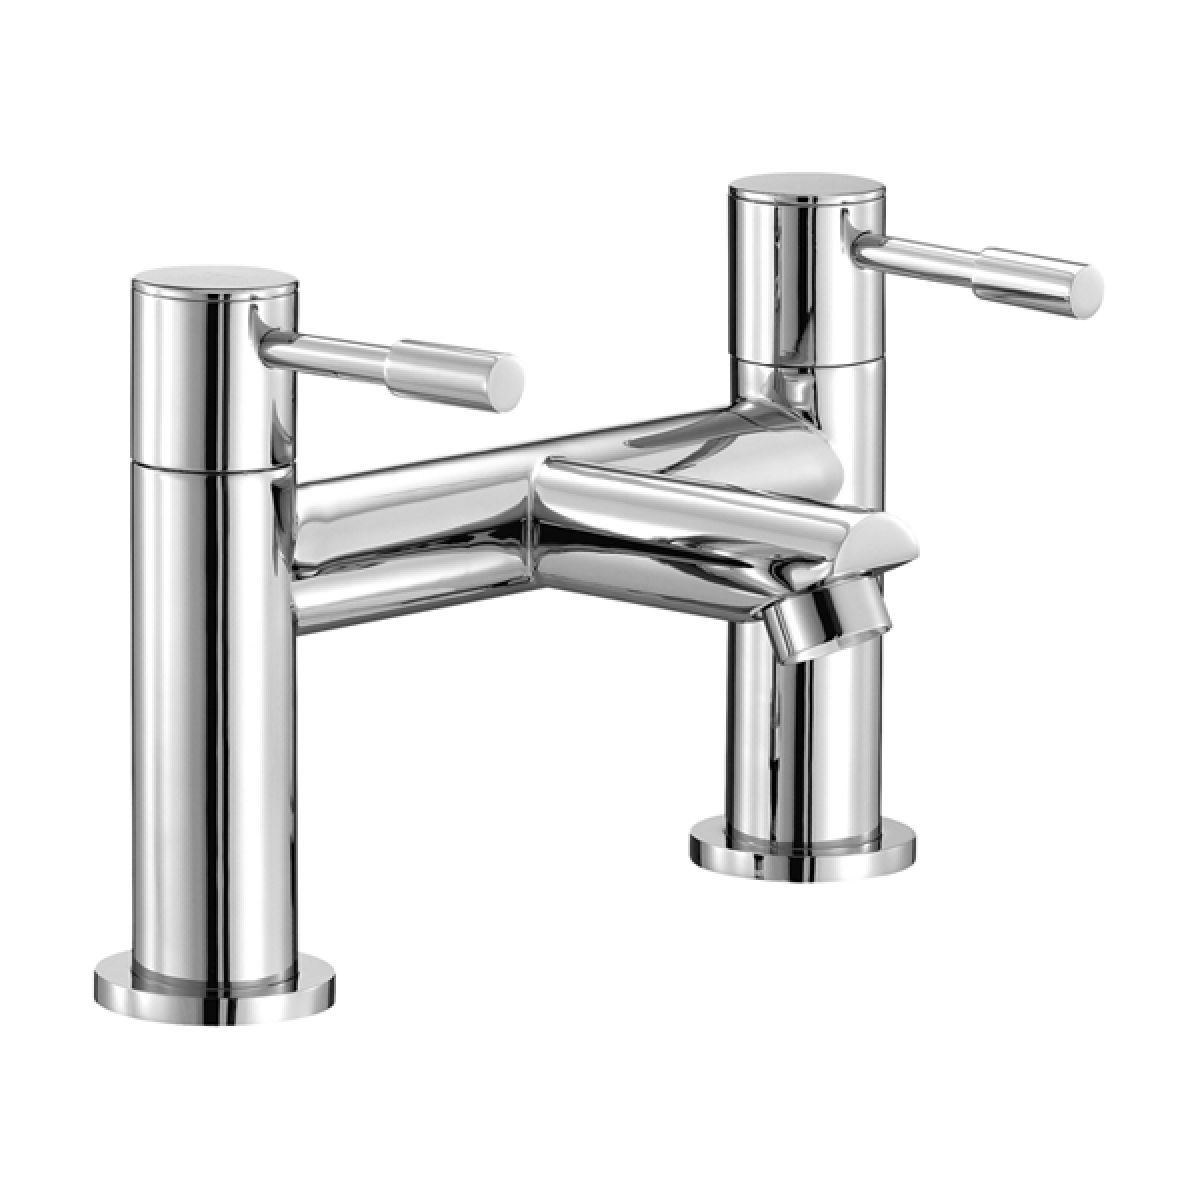 Eurostream Primo Bath Filler Tap